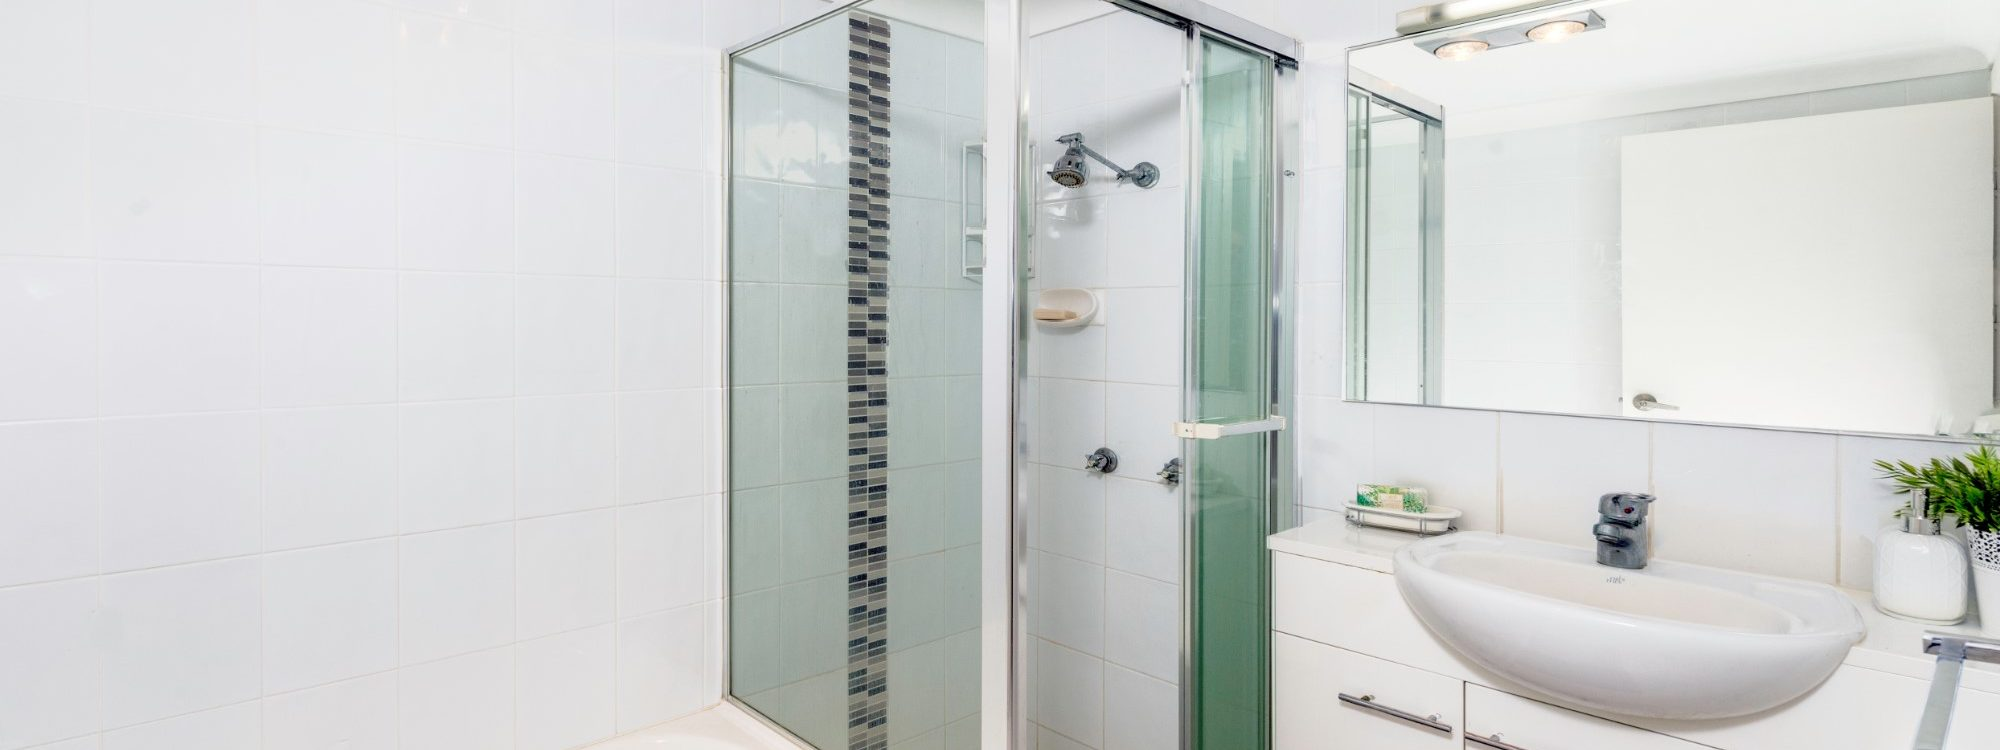 Villa on the Boulevard - Hooker Boulevard, Broadbeach - Main Bathroom